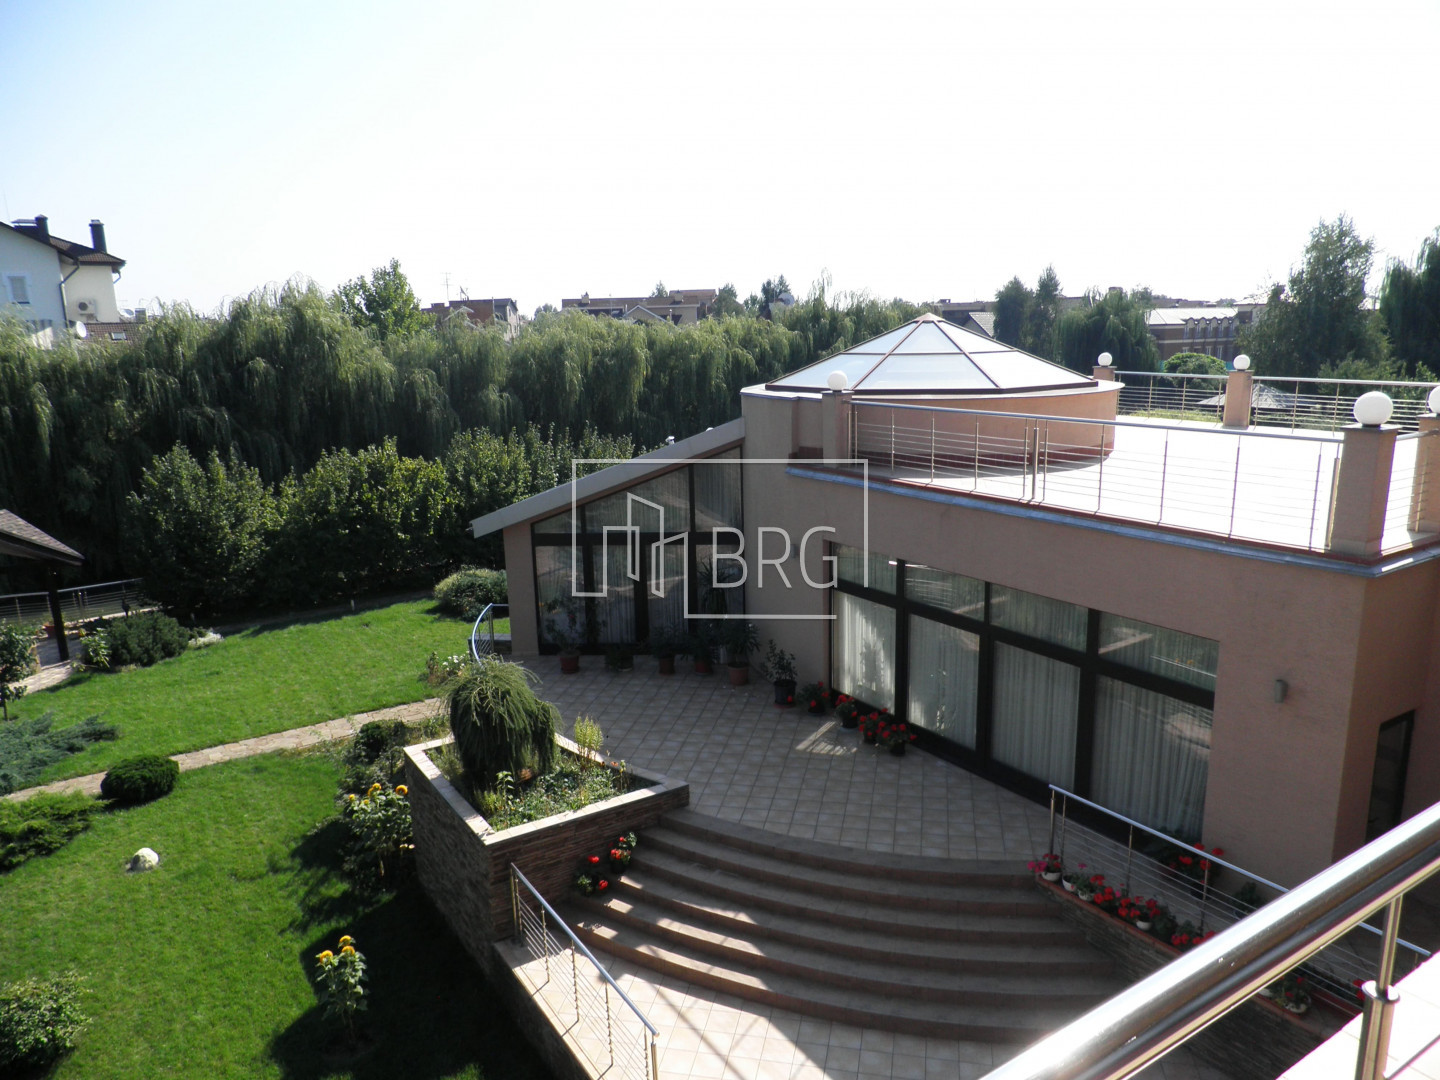 House KG Golden Gate 980m with access to the river Kozinka. Kiev region